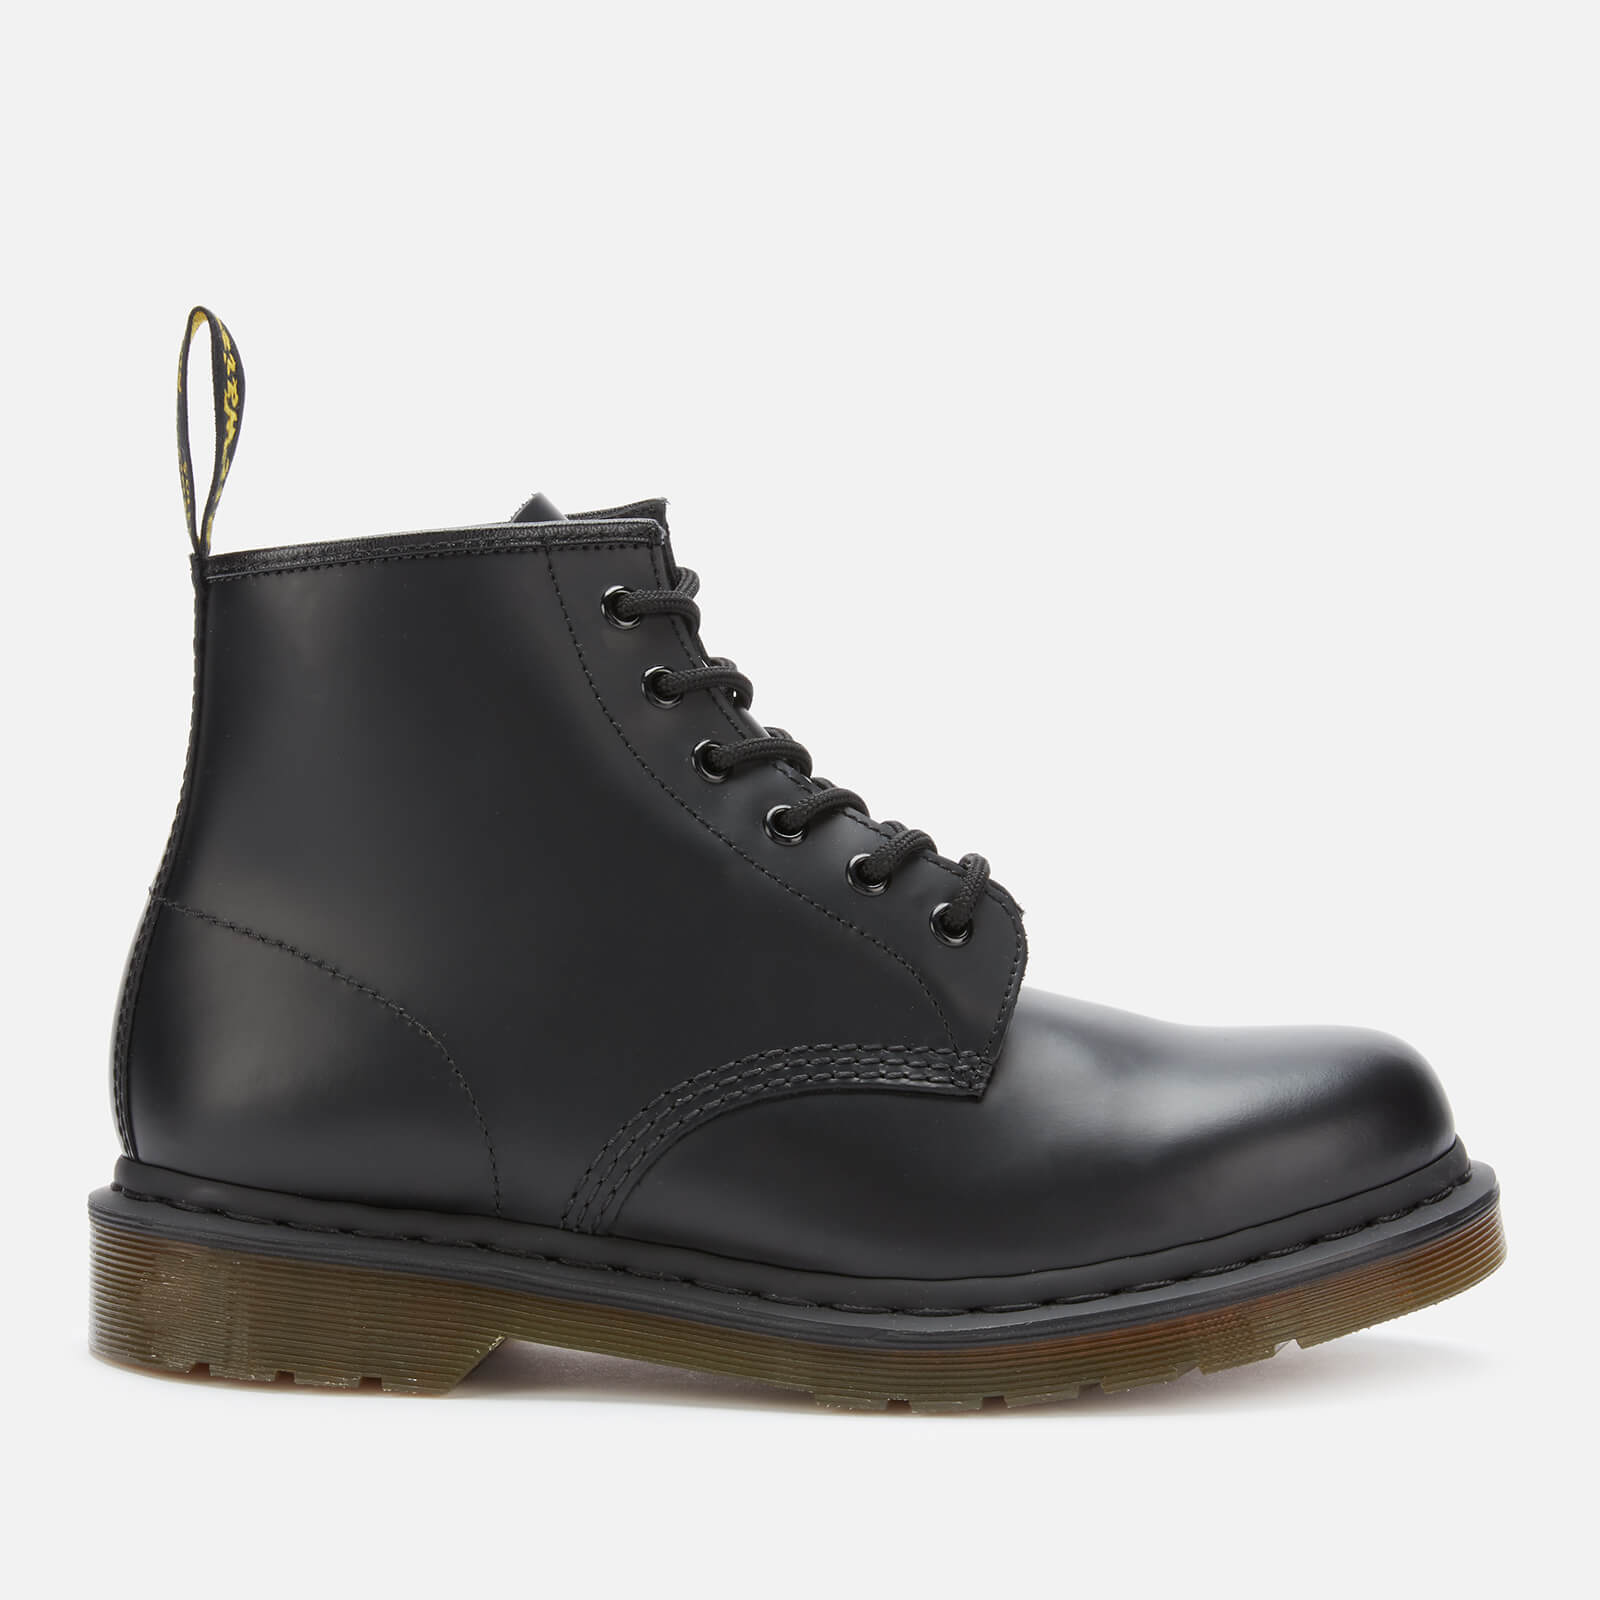 f6280a8bcf5 Dr. Martens 101 Smooth Leather 6-Eye Boots - Black